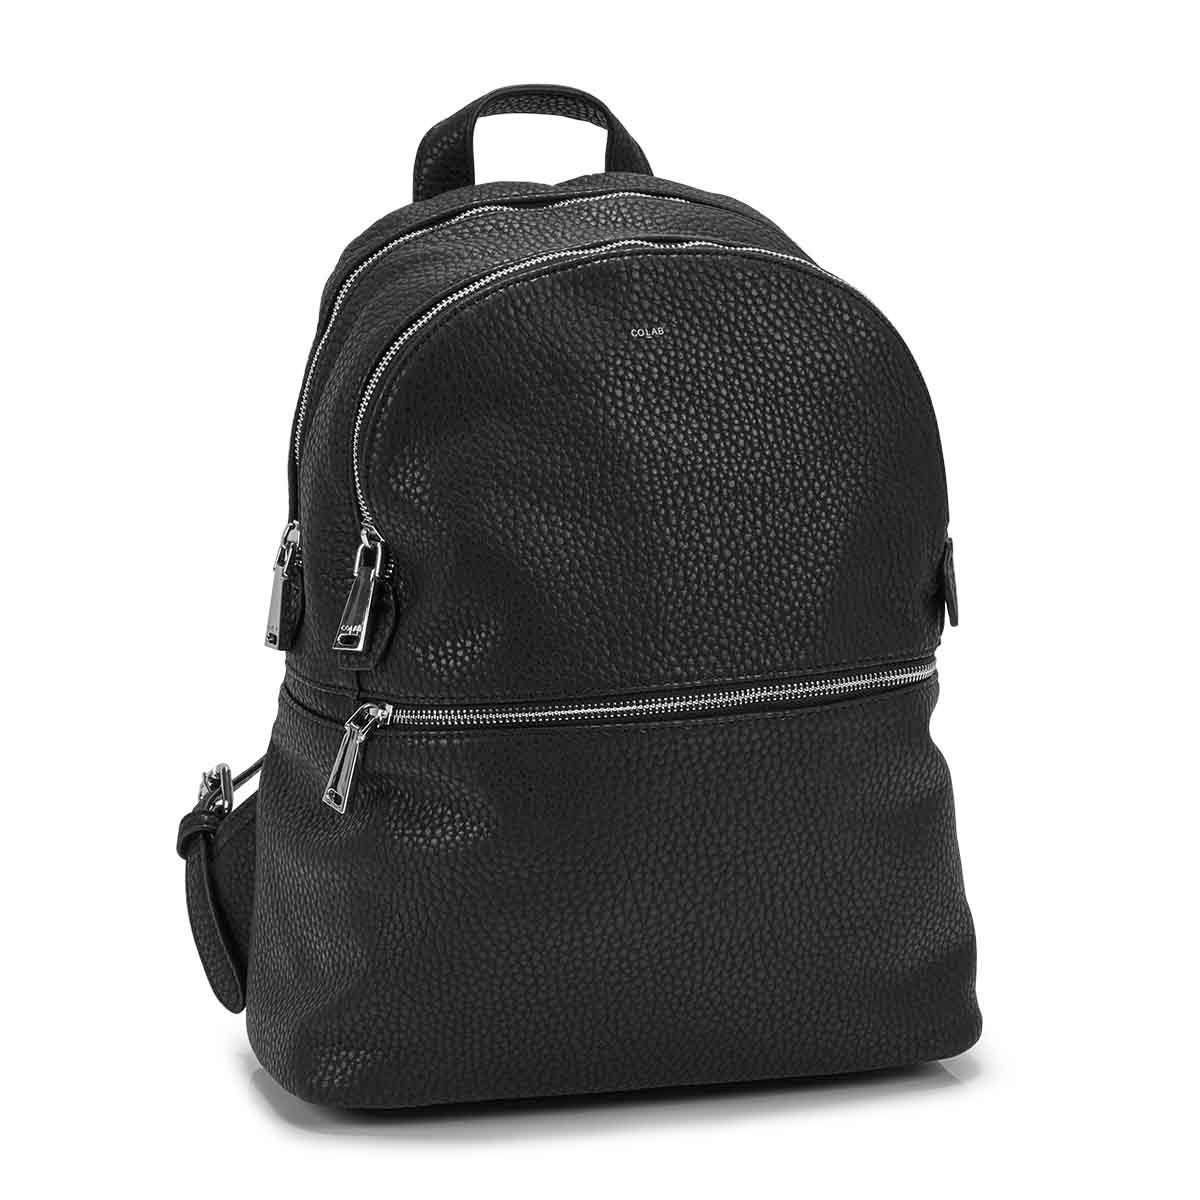 Lds Hush black backpack